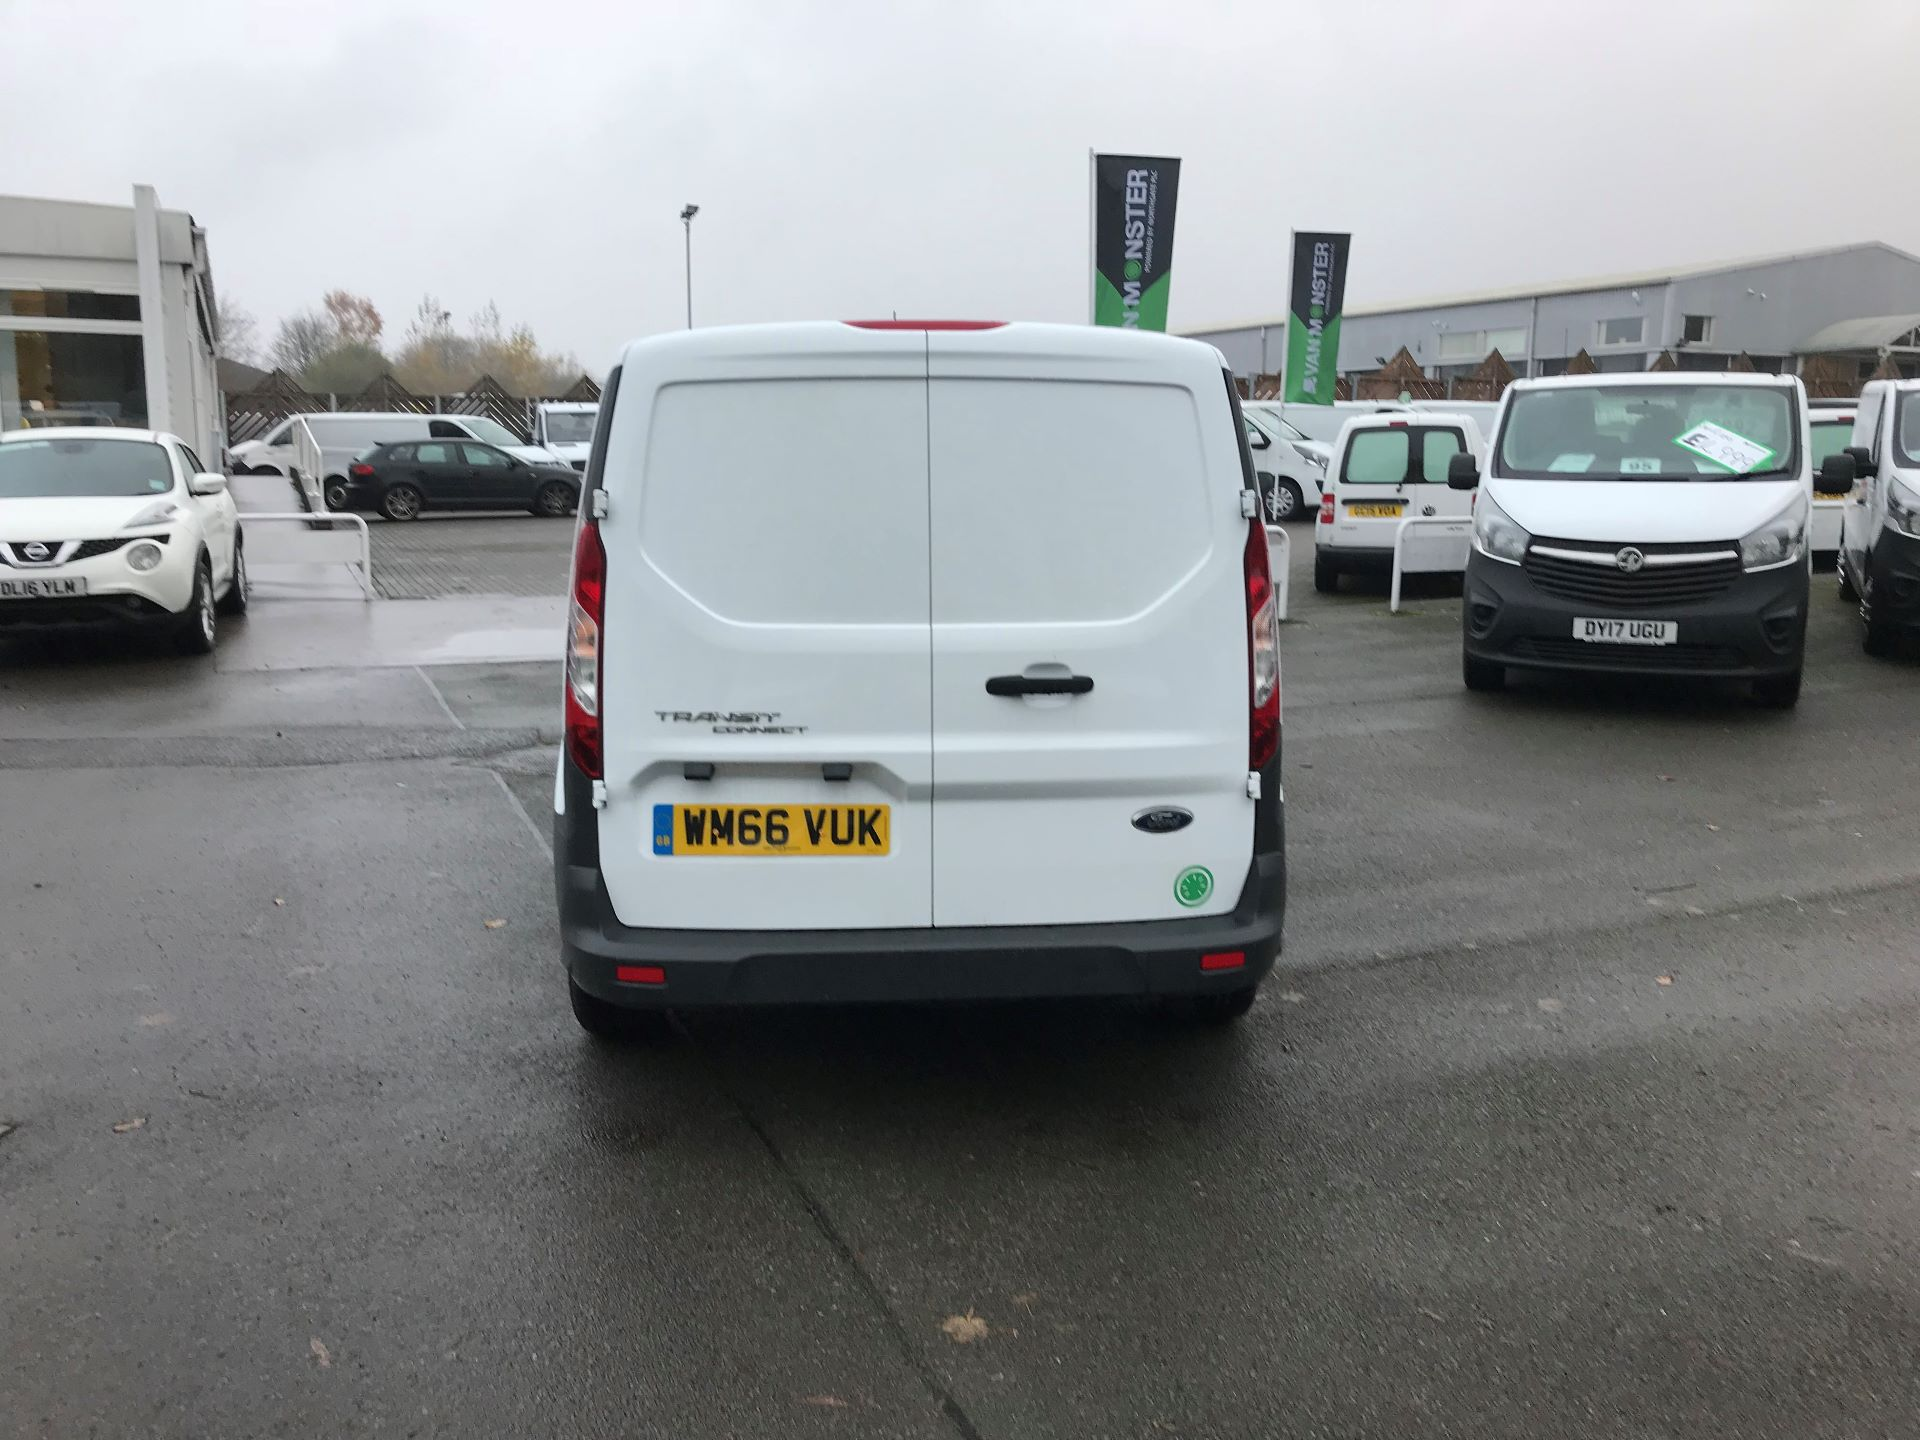 2016 Ford Transit Connect T200 L1 H1 1.5TDCI 75PS EURO 6 (WM66VUK) Image 6